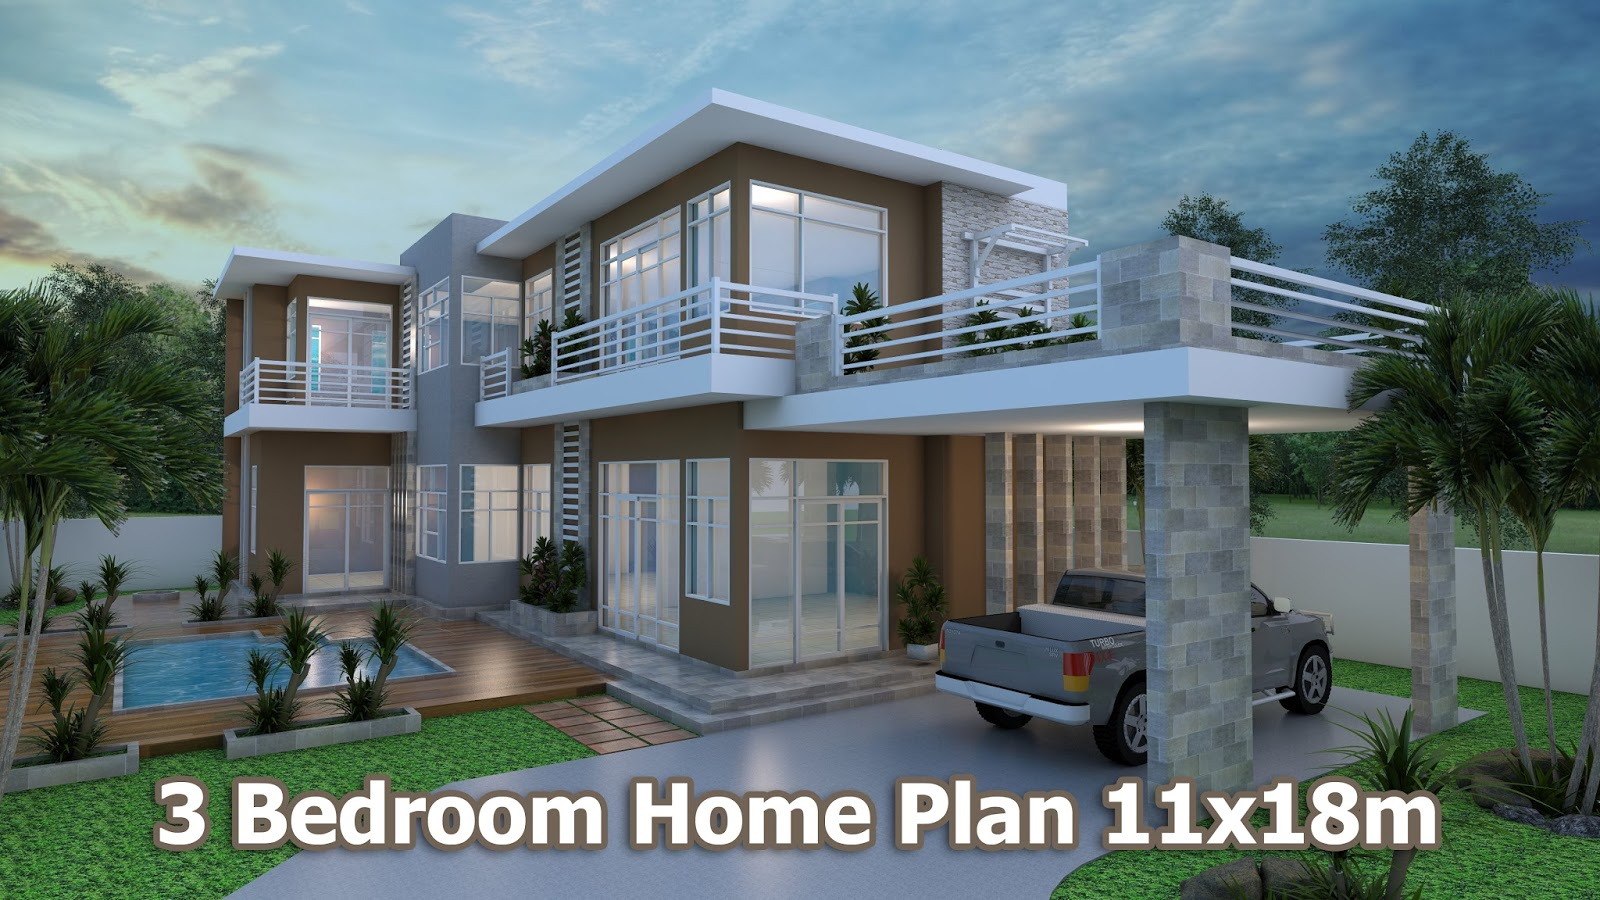 Home design 3d sketchup villa design plan 11x18m sam for Villa plans and designs